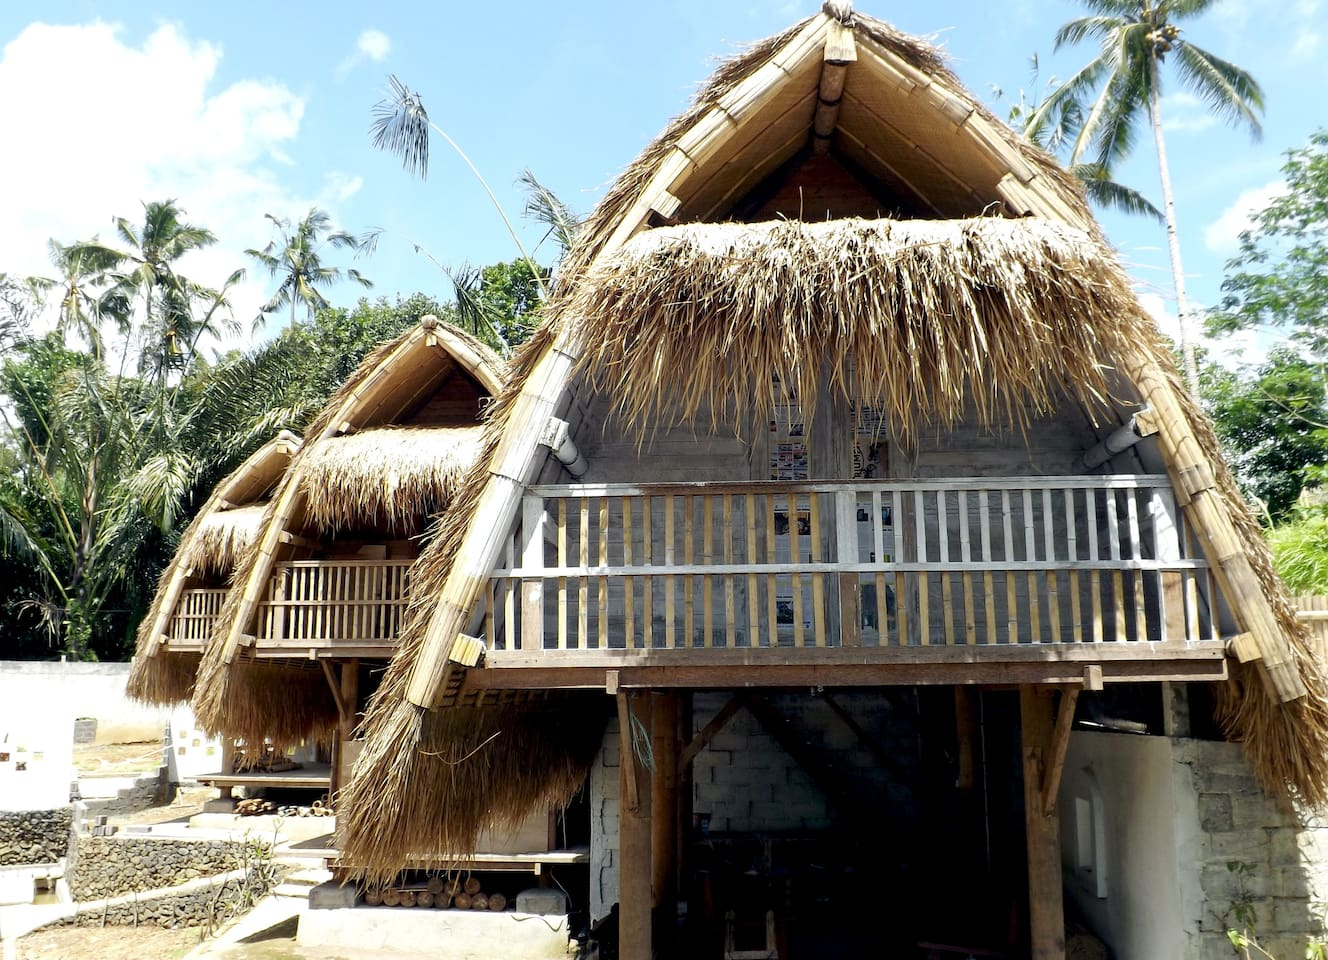 Jineng Traditional Balinese design made by Coconut wooden villa.50 mqs living area in 2 floor. stuning rice field view inside the village life.side 2 oldest pura